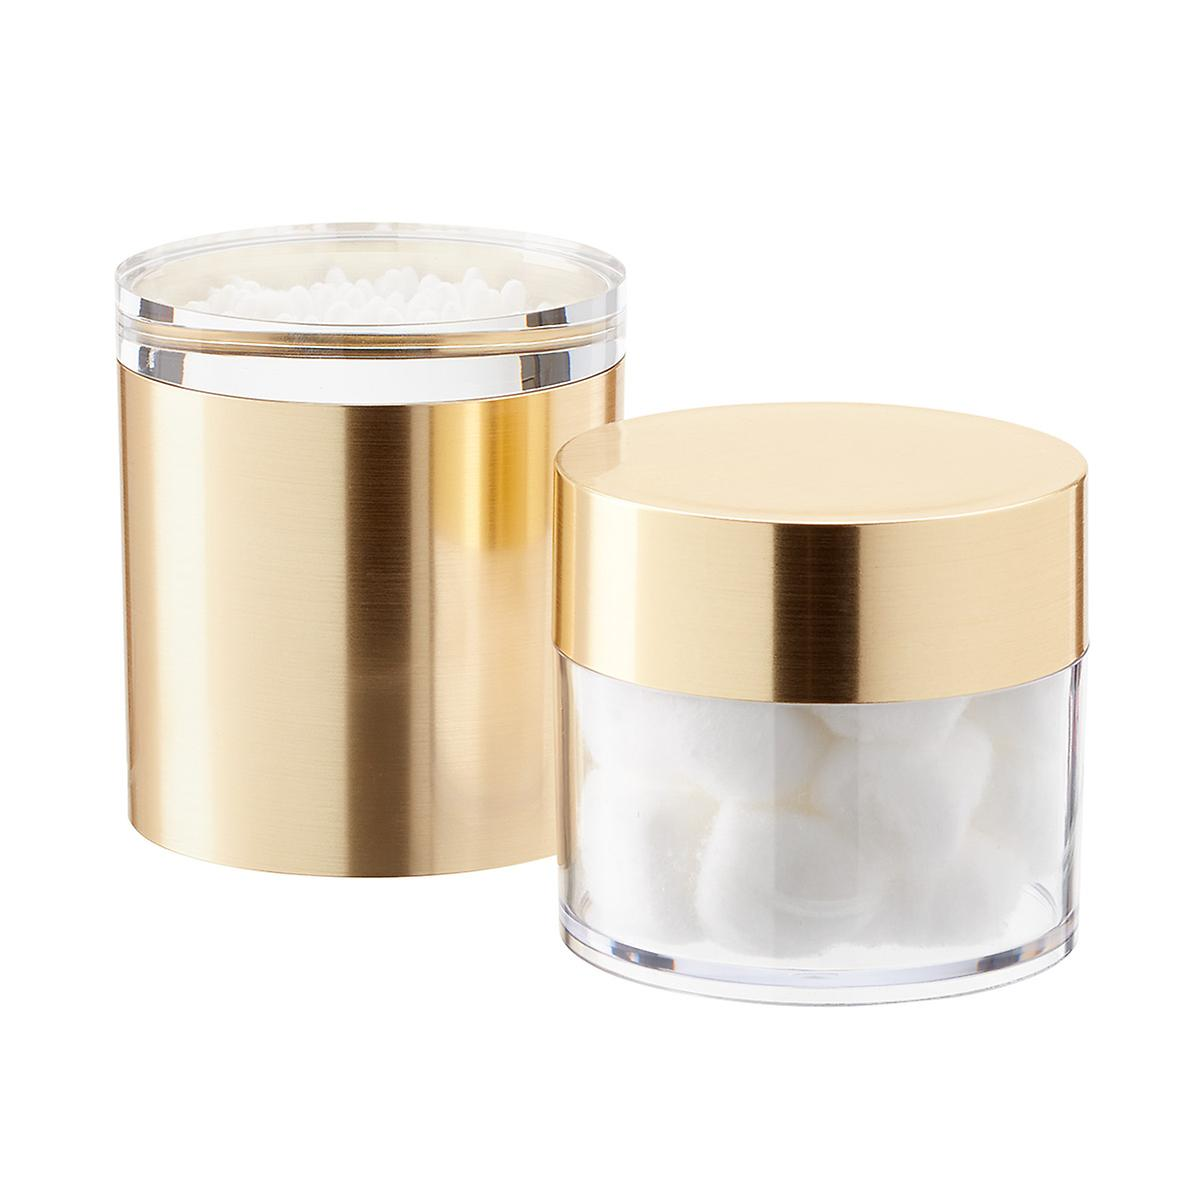 Brushed Gold Metallic Canisters with Lids | The Container ...